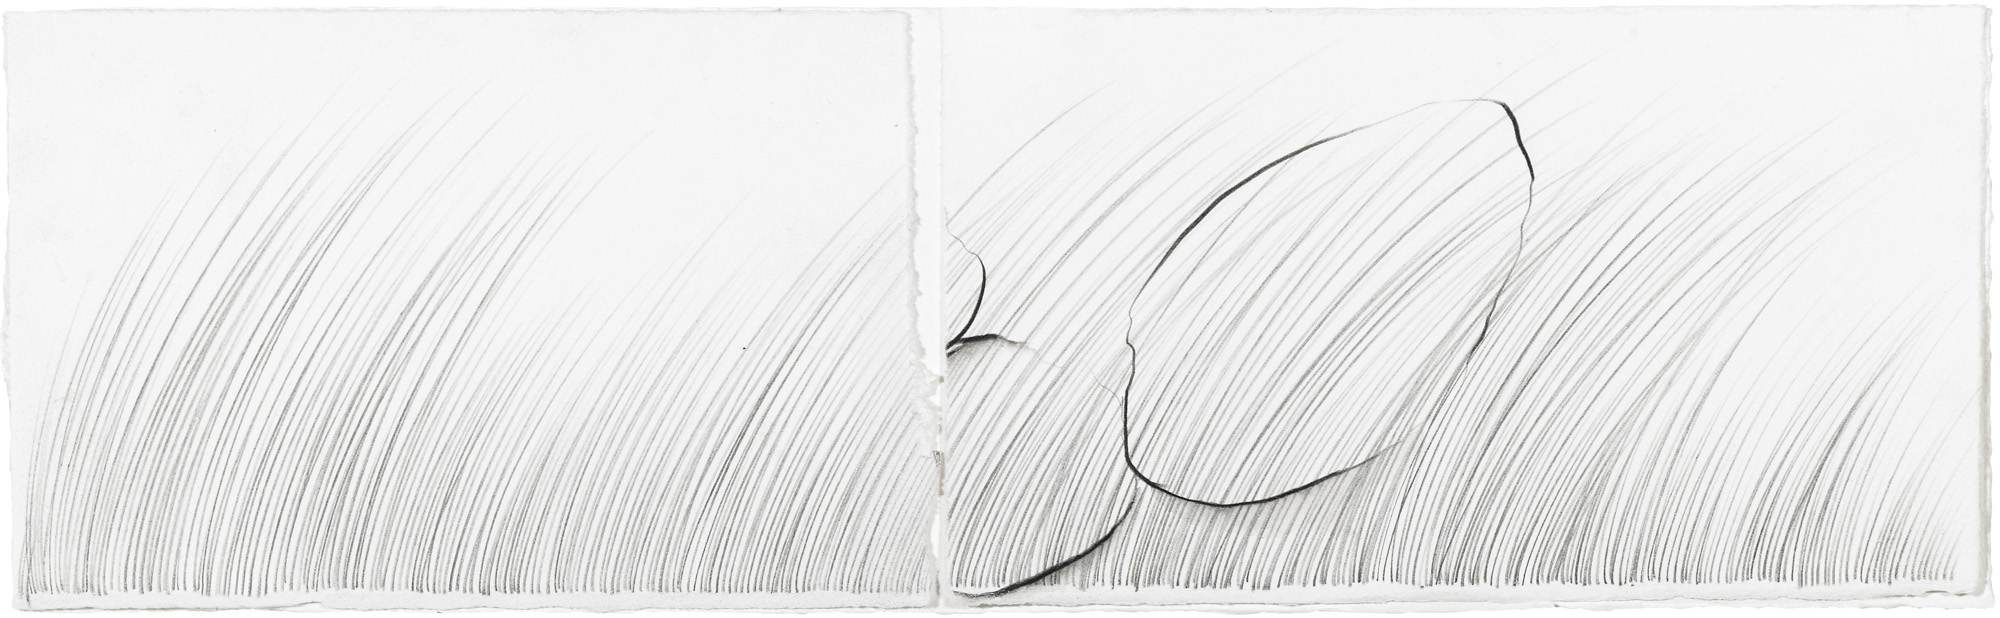 Grass Being, II   graphite and soluble pencil on cotton paper, collage, 4 ½ x 14 ¼ inches, 2013